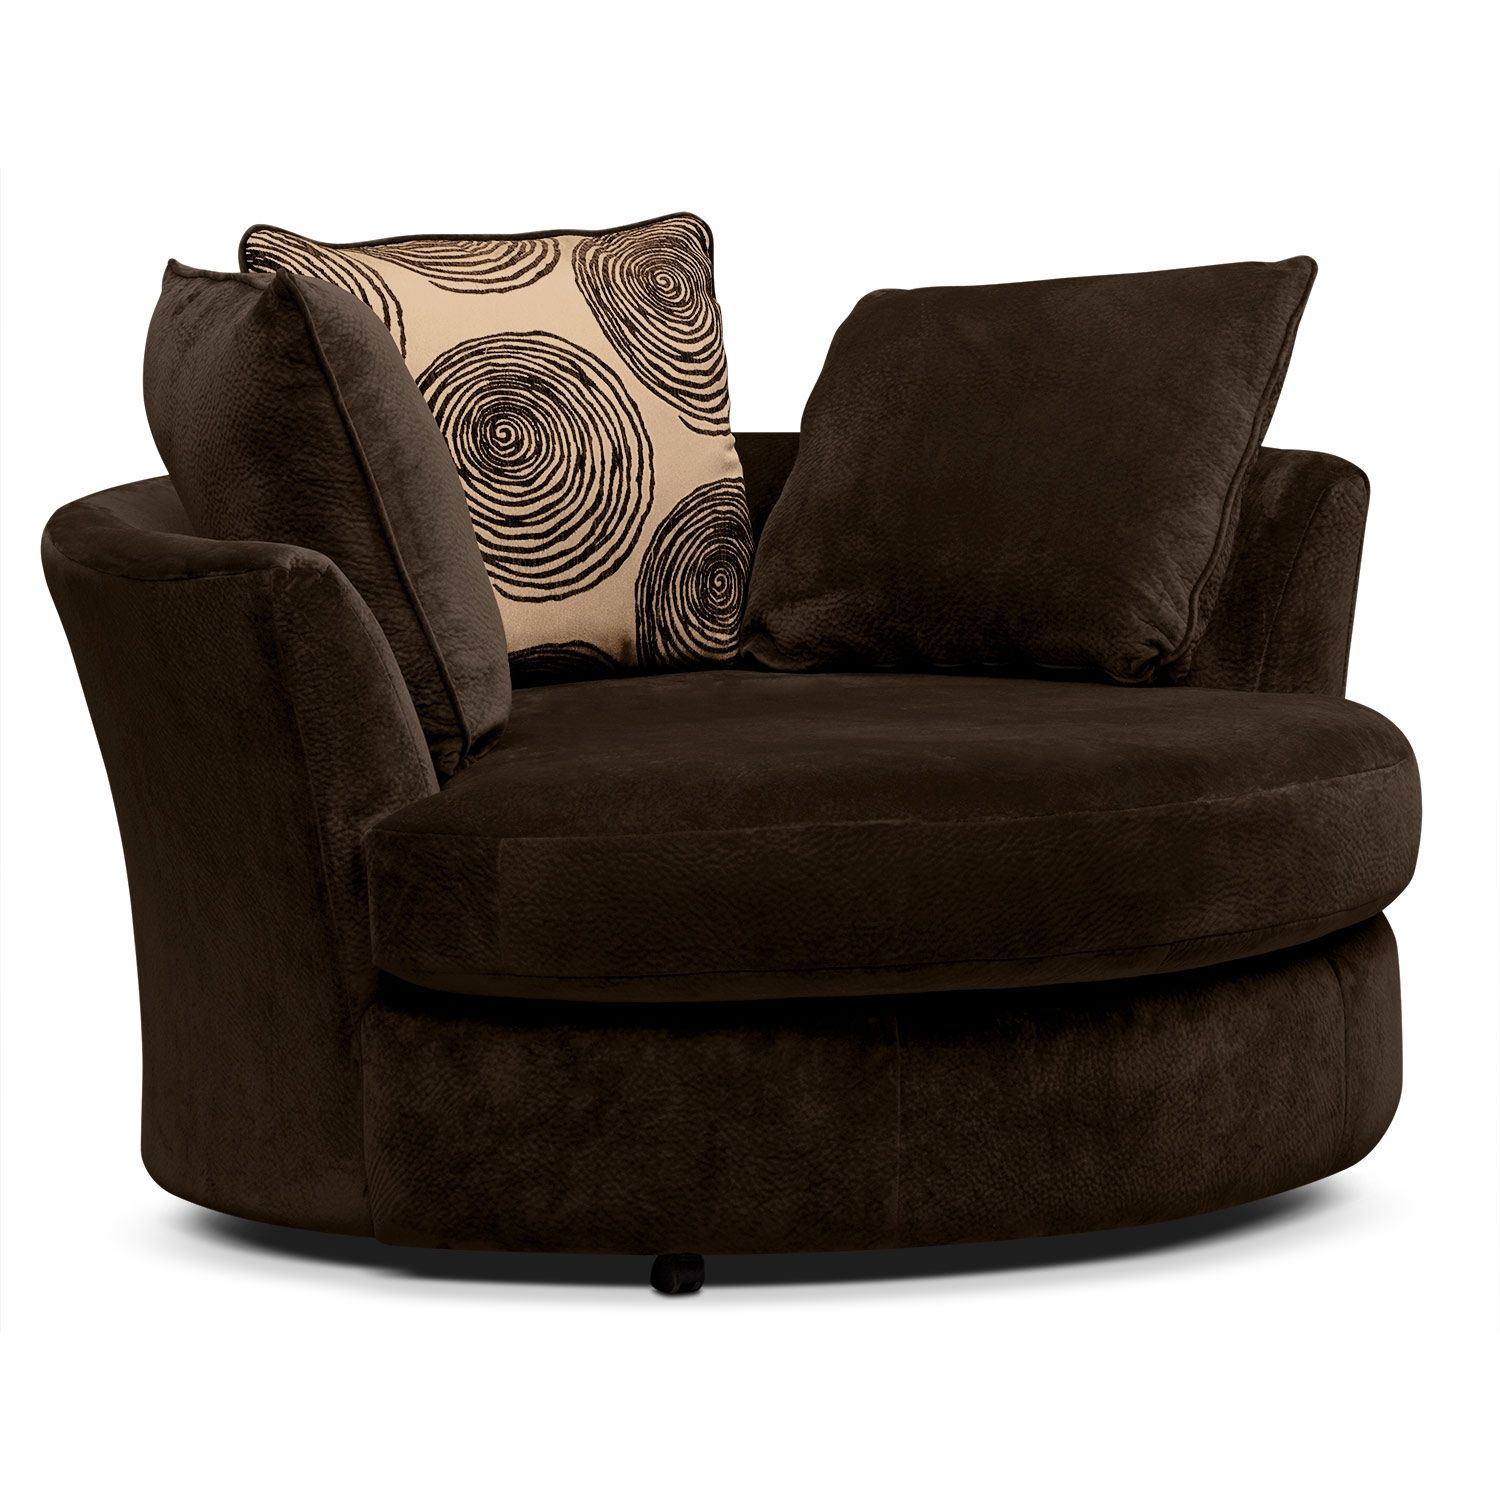 Living Room Furniture Catalina Chocolate Swivel Chair